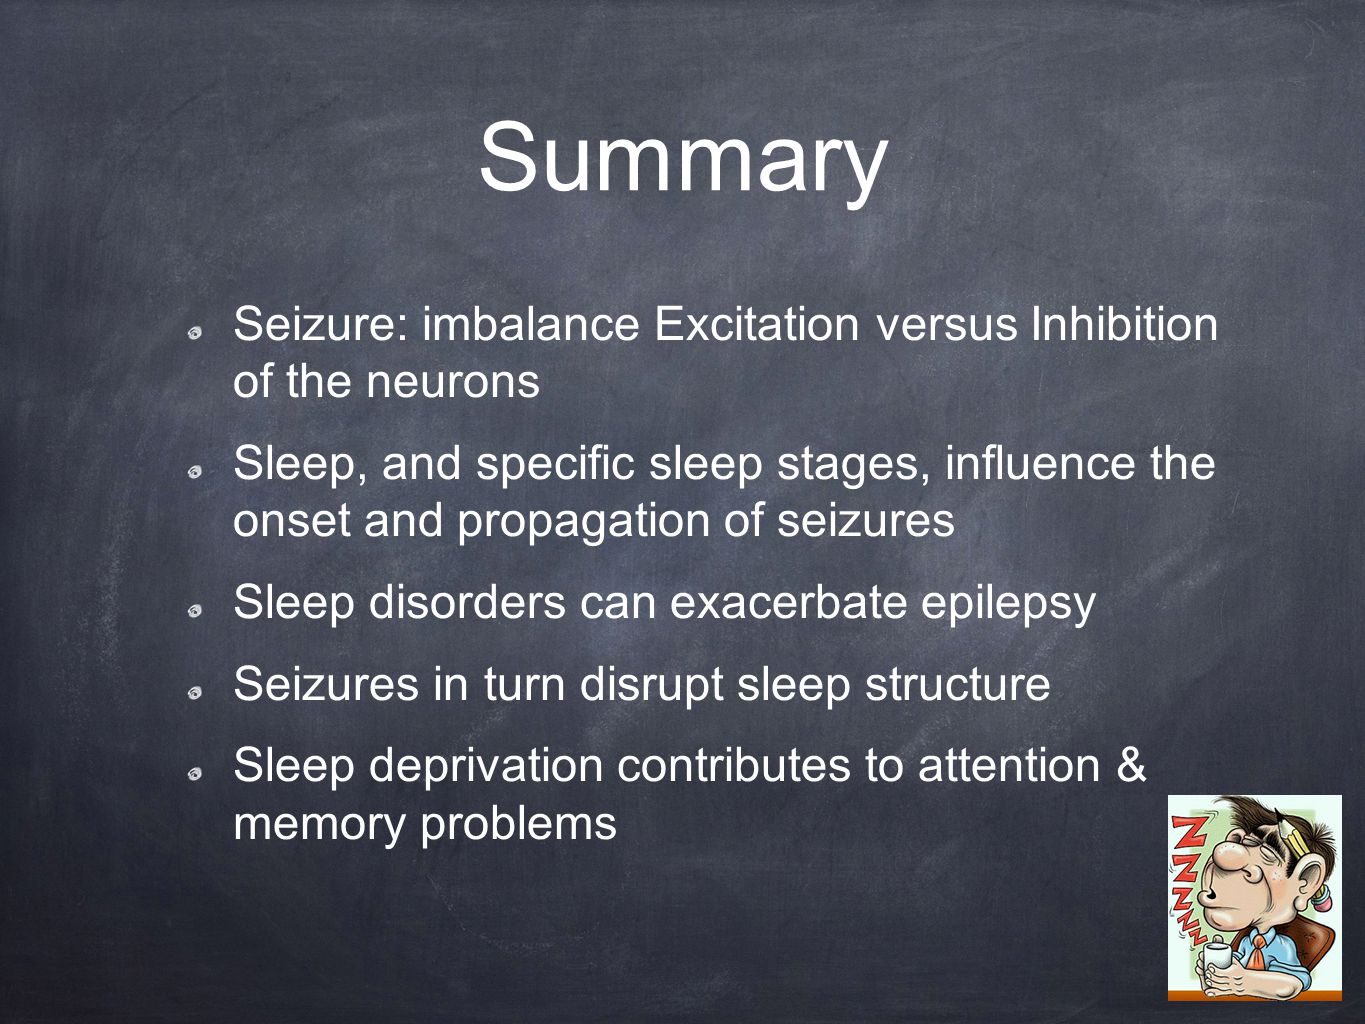 Summary Seizure: imbalance Excitation versus Inhibition of the neurons Sleep, and specific sleep stages, influence the onset and propagation of seizures Sleep disorders can exacerbate epilepsy Seizures in turn disrupt sleep structure Sleep deprivation contributes to attention & memory problems